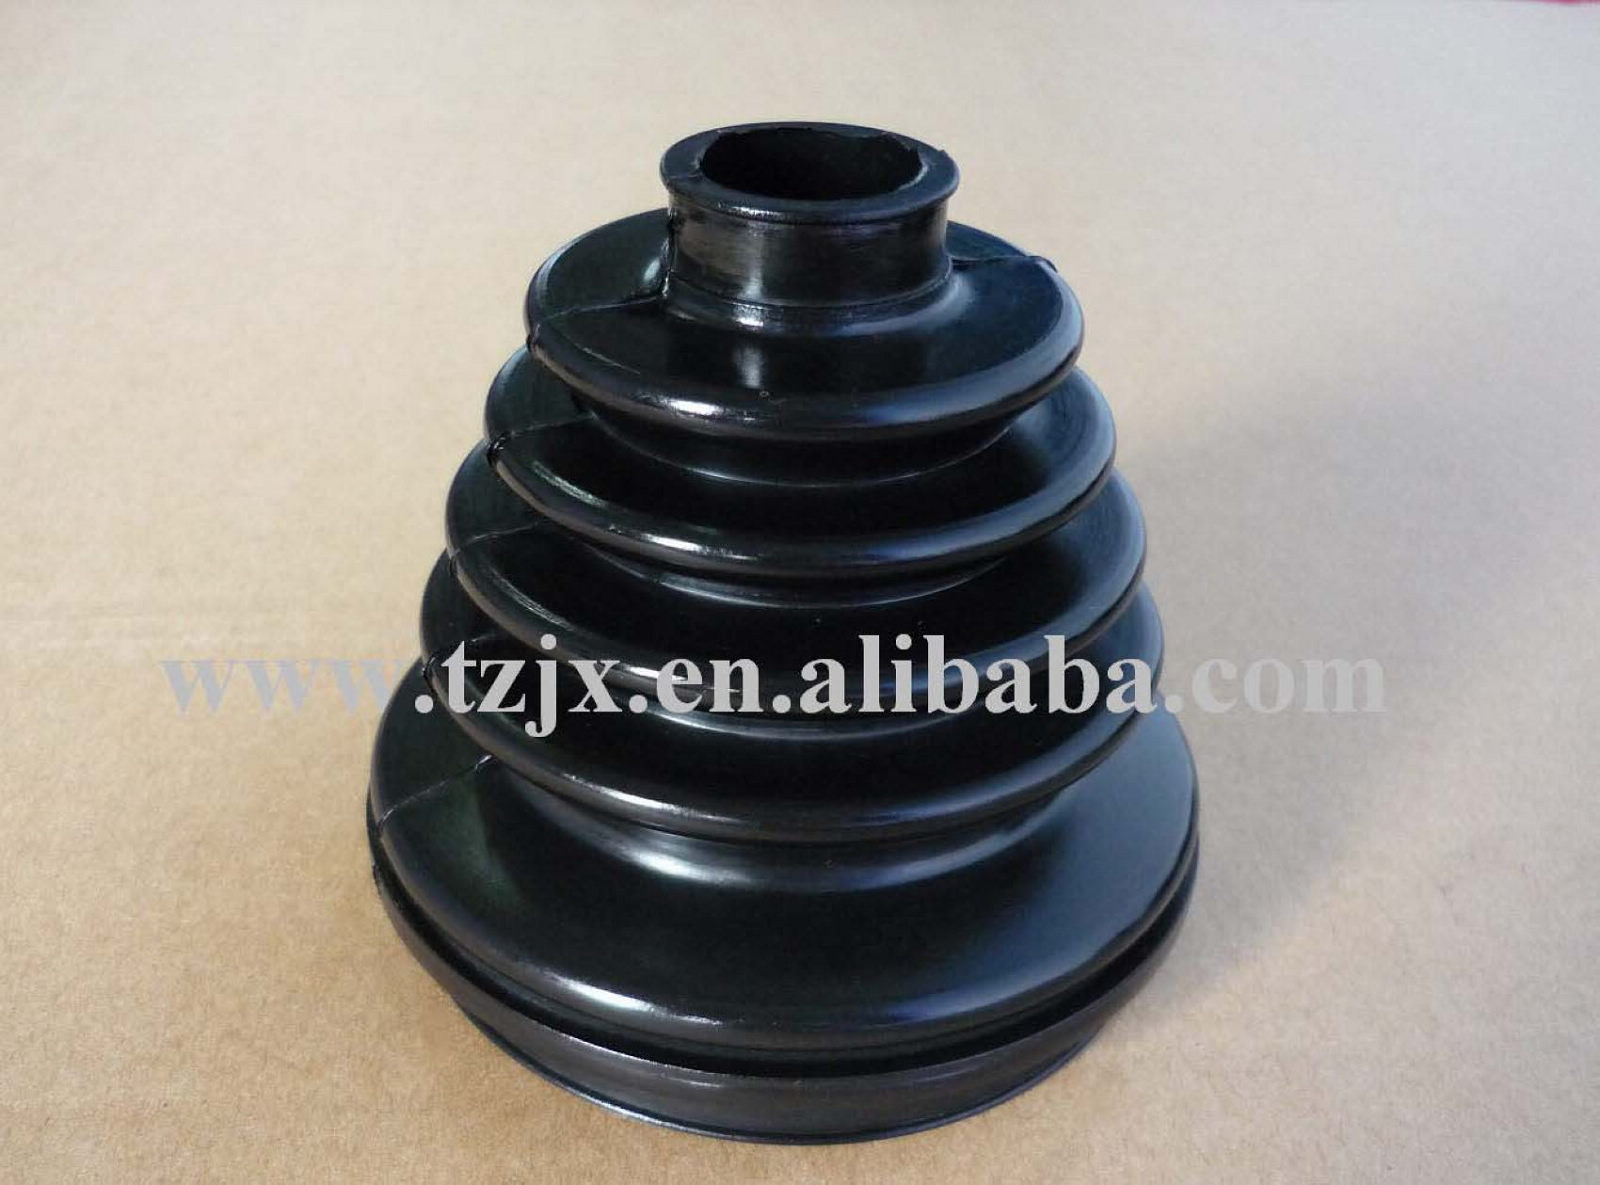 HIGH QUALITY Auto Rubber Dust Boot